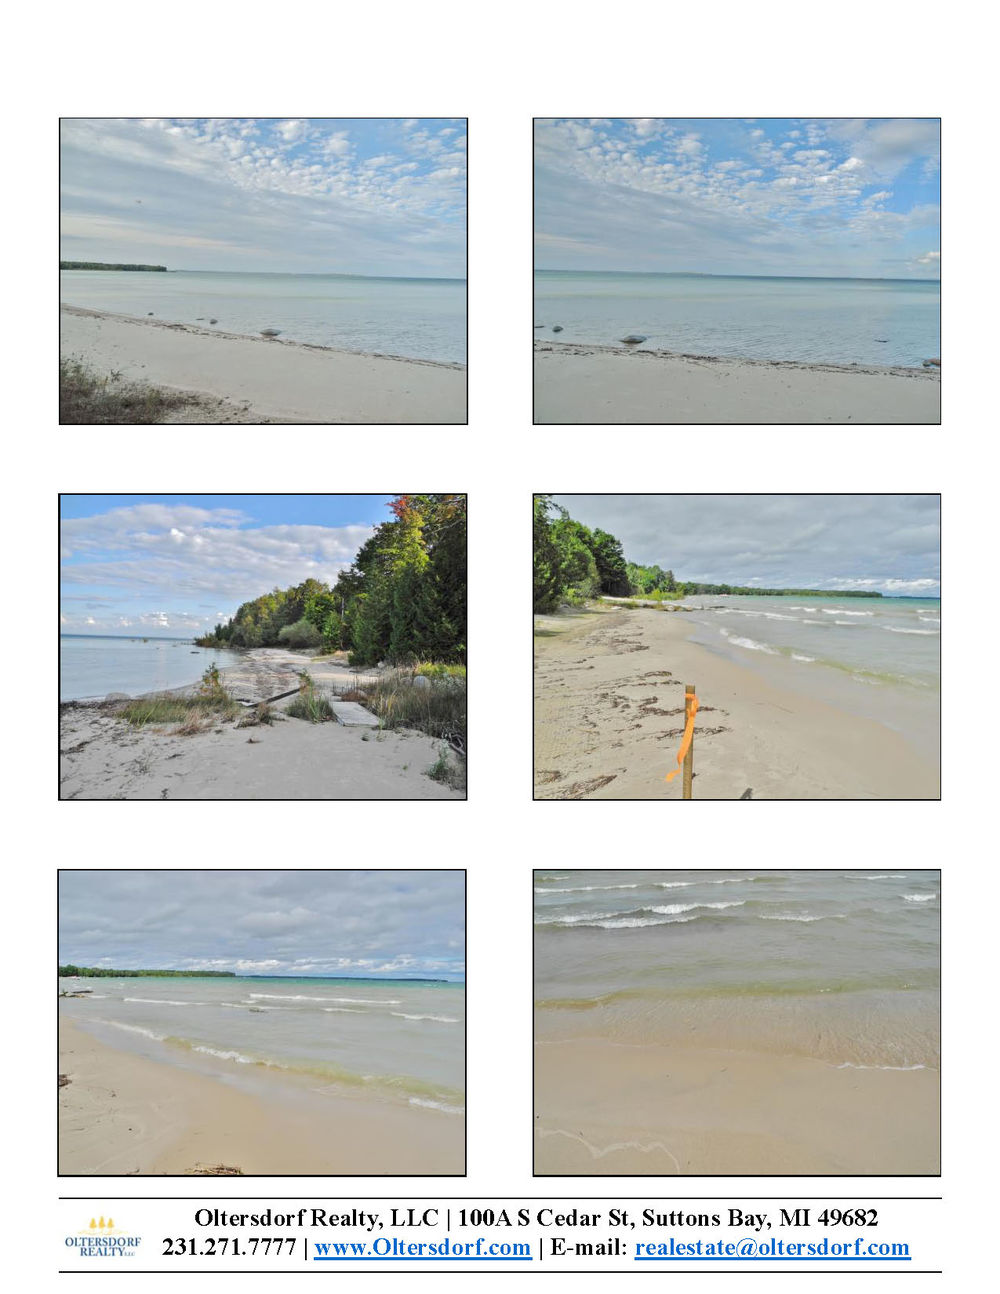 7156 N W Bay Shore Drive, Northport, MI Vacant waterfront lot for sale by Oltersdorf Realty LLC Marketing Packet (2).jpg